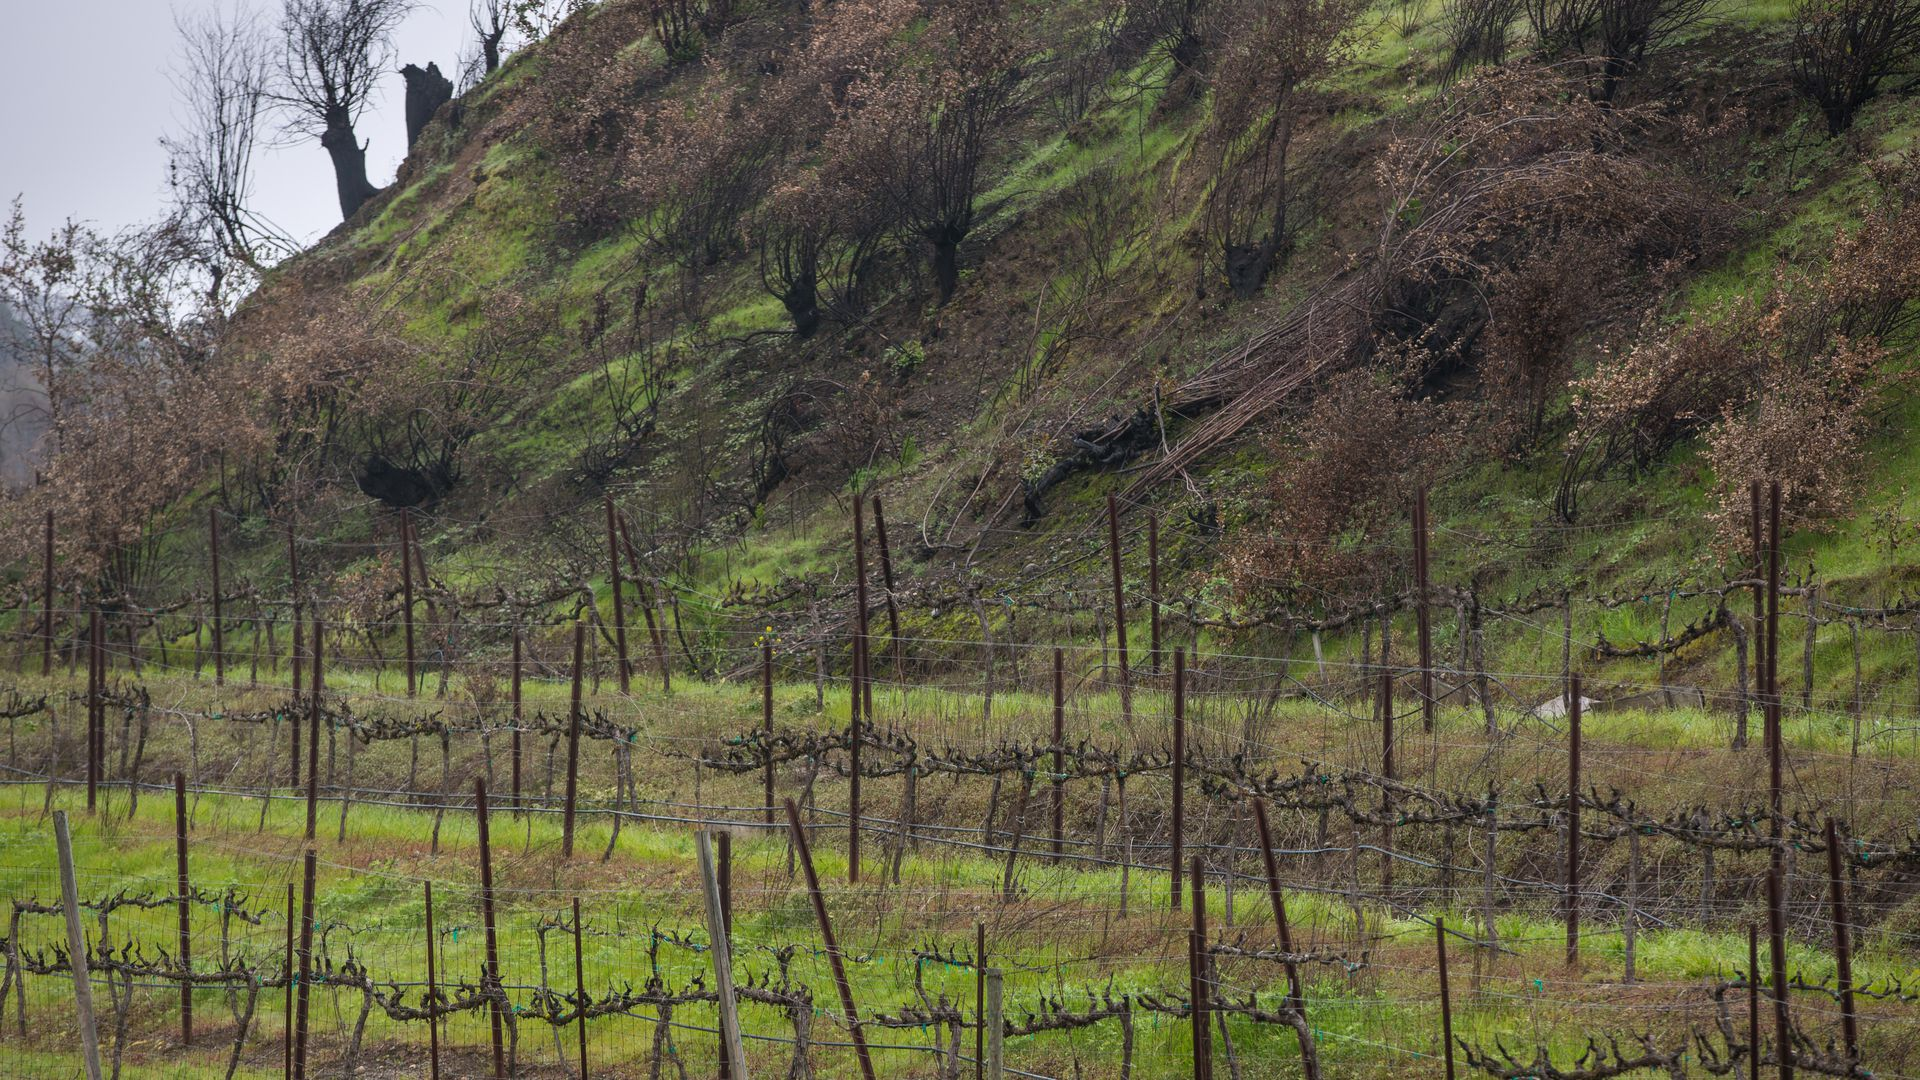 Grapevines along Old Redwood Highway burned in the October 9 Tubbs Fire